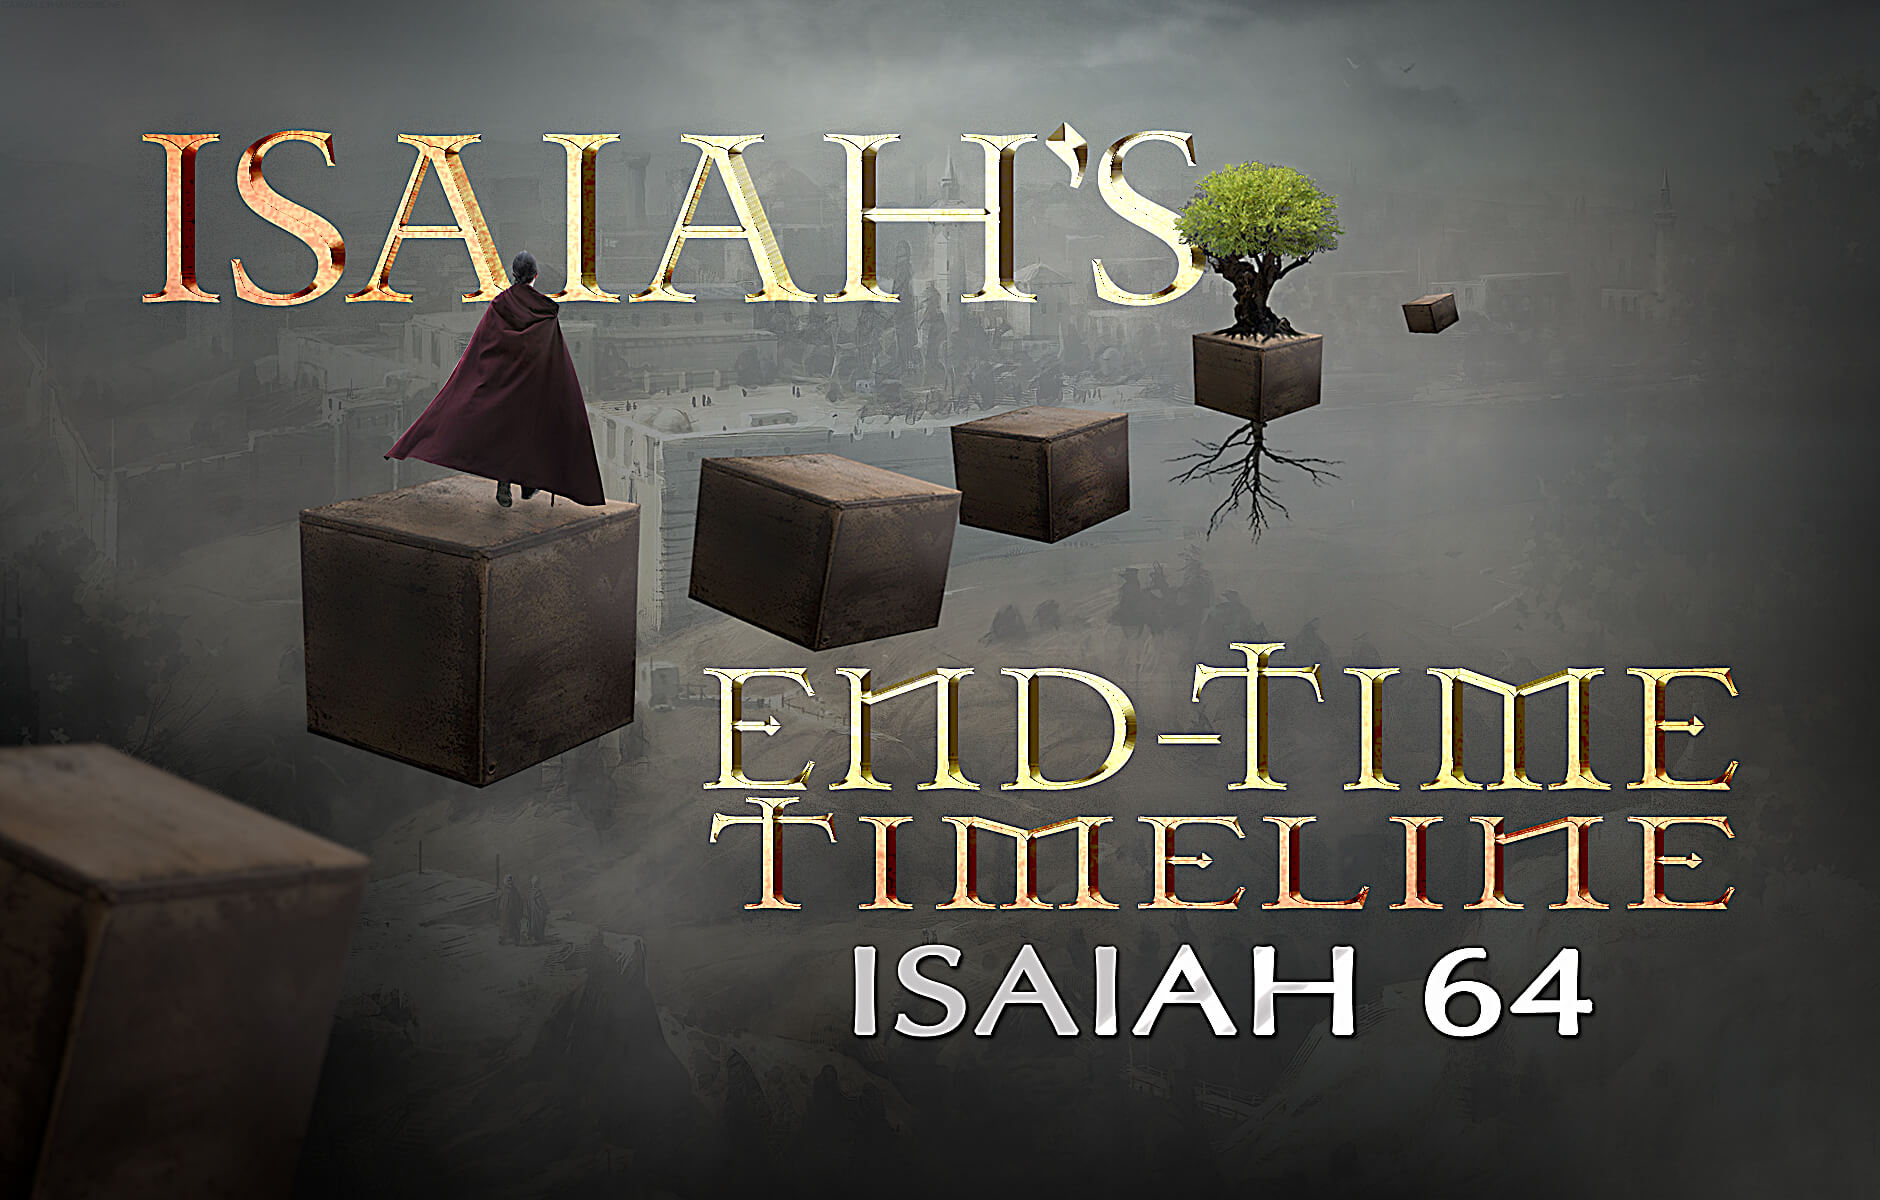 Isaiah's End-time Timeline Chapter 64